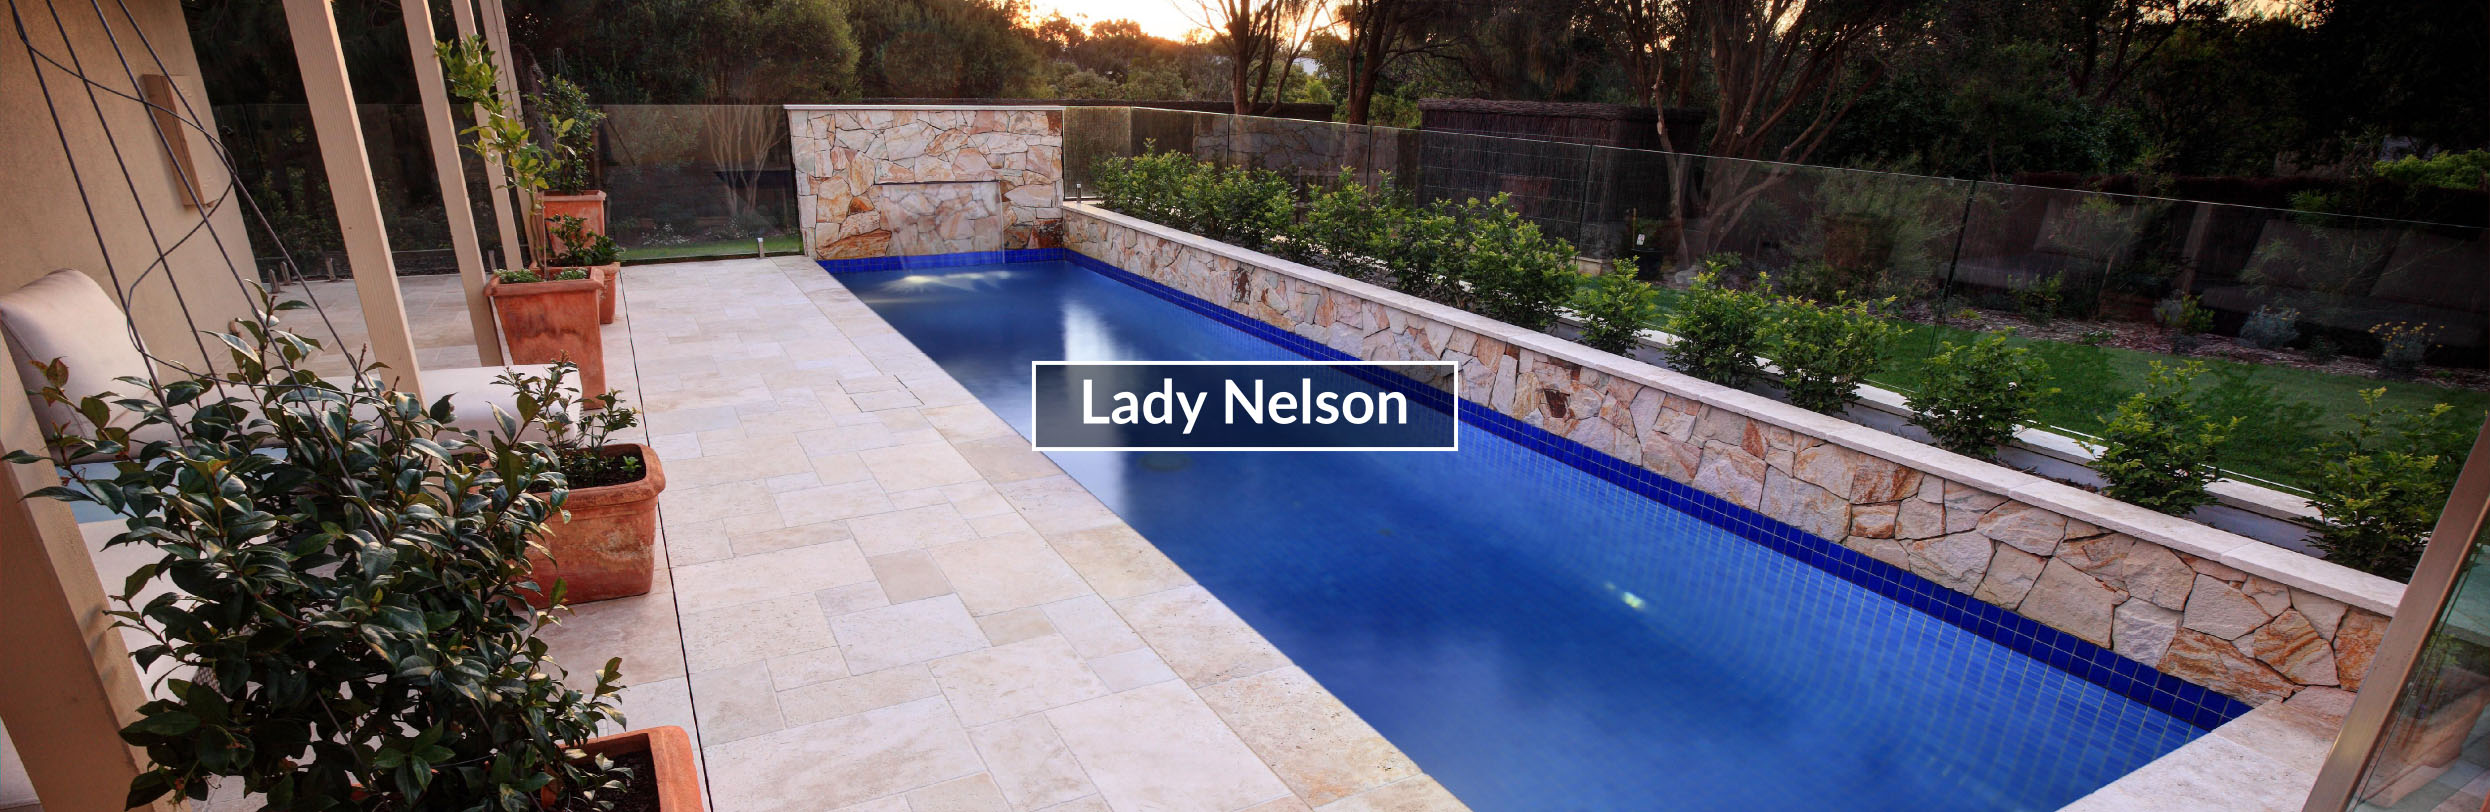 Lady Nelson - Kiama Pools Pool Project